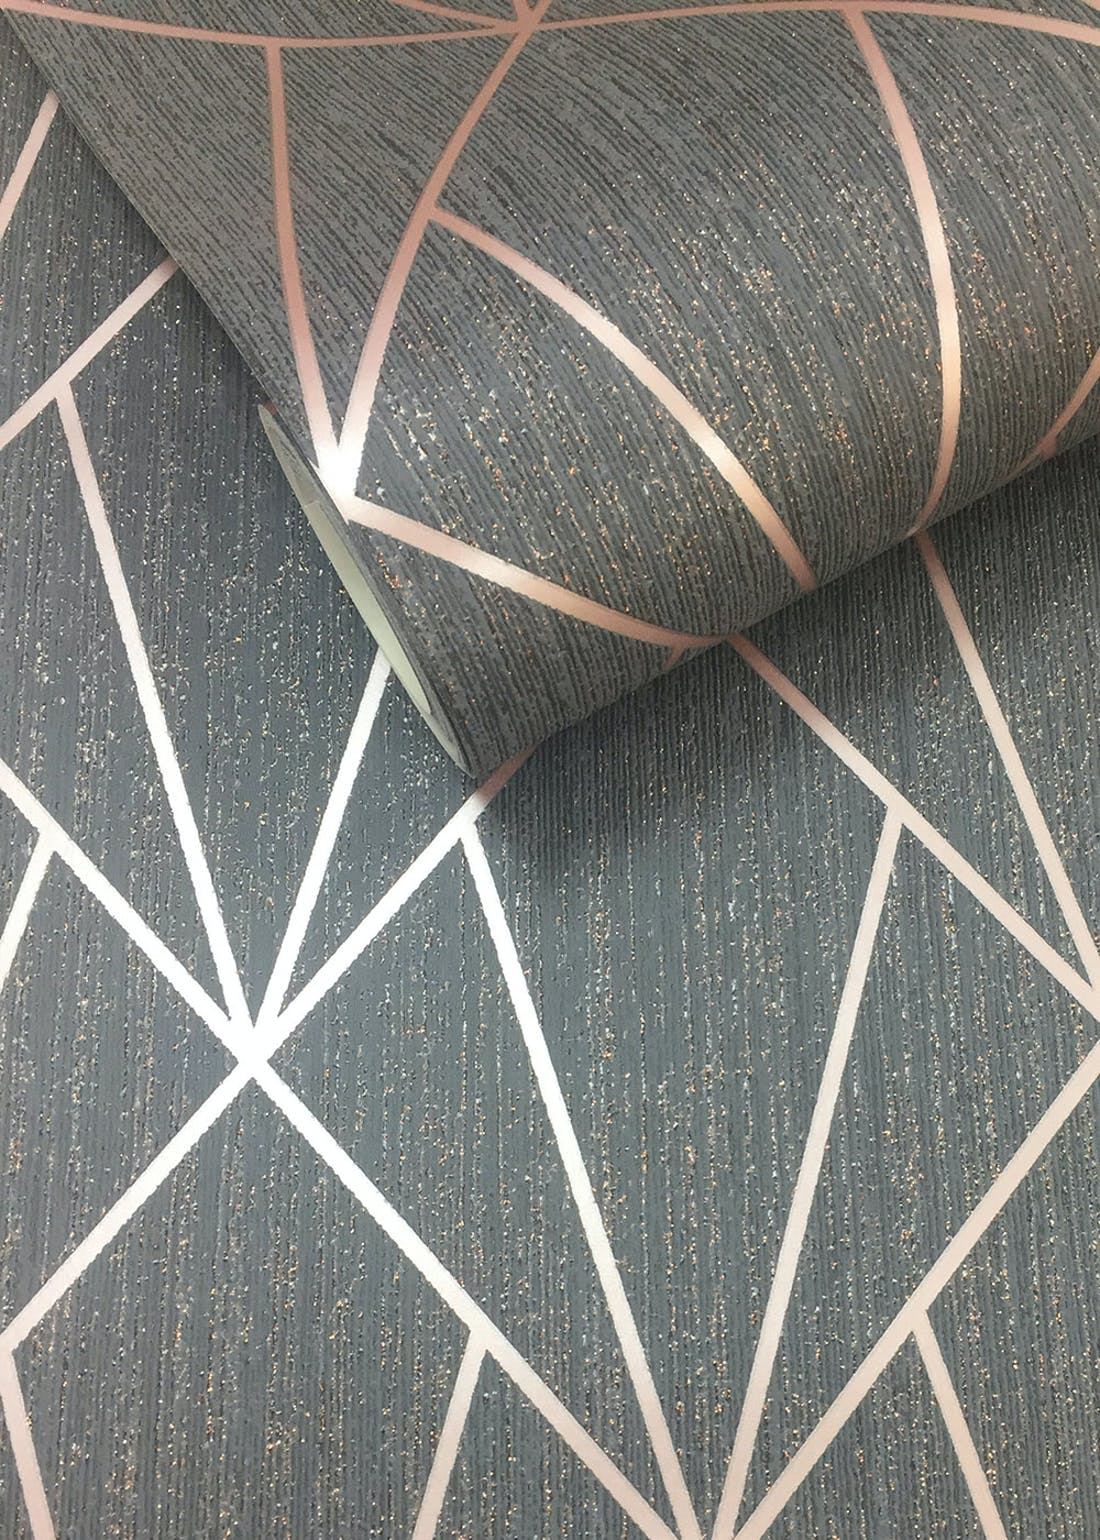 Muriva Indra Charcoal Rose Gold Wallpaper (10.05m x 53cm)